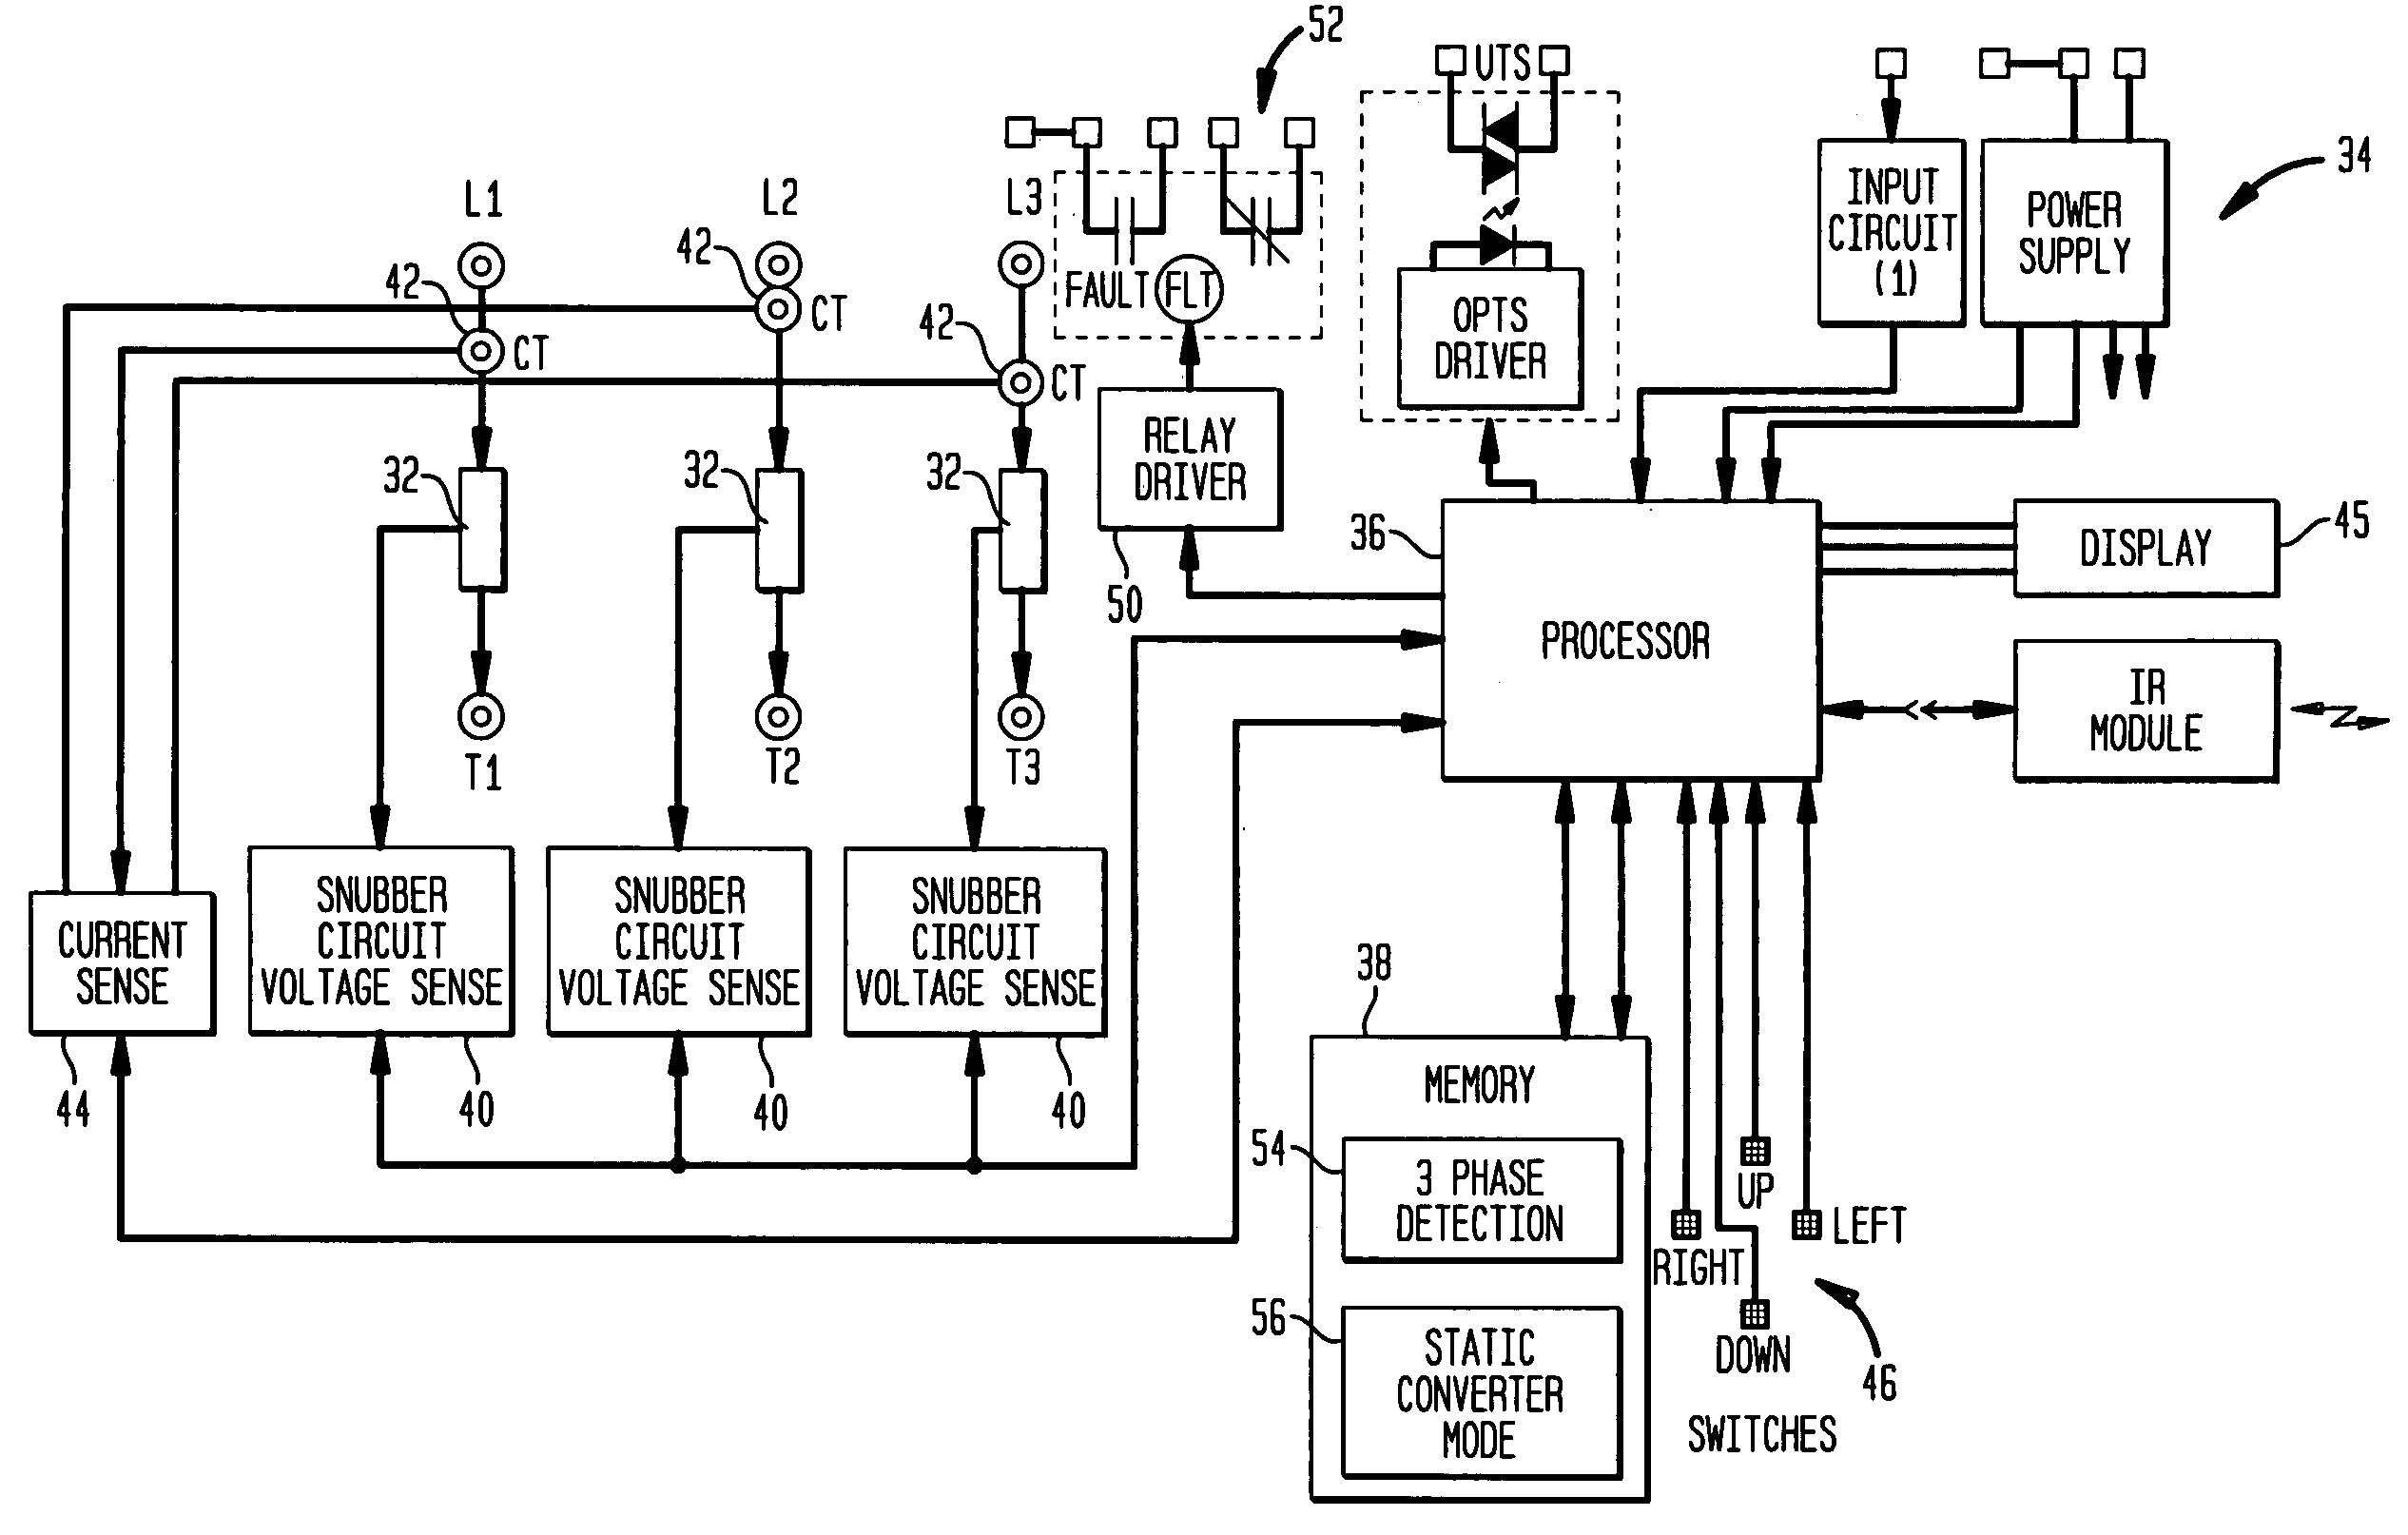 Single Phase Ac Motor Wiring Diagram 208 Single Phase Wiring Diagram Wiring Diagram Database